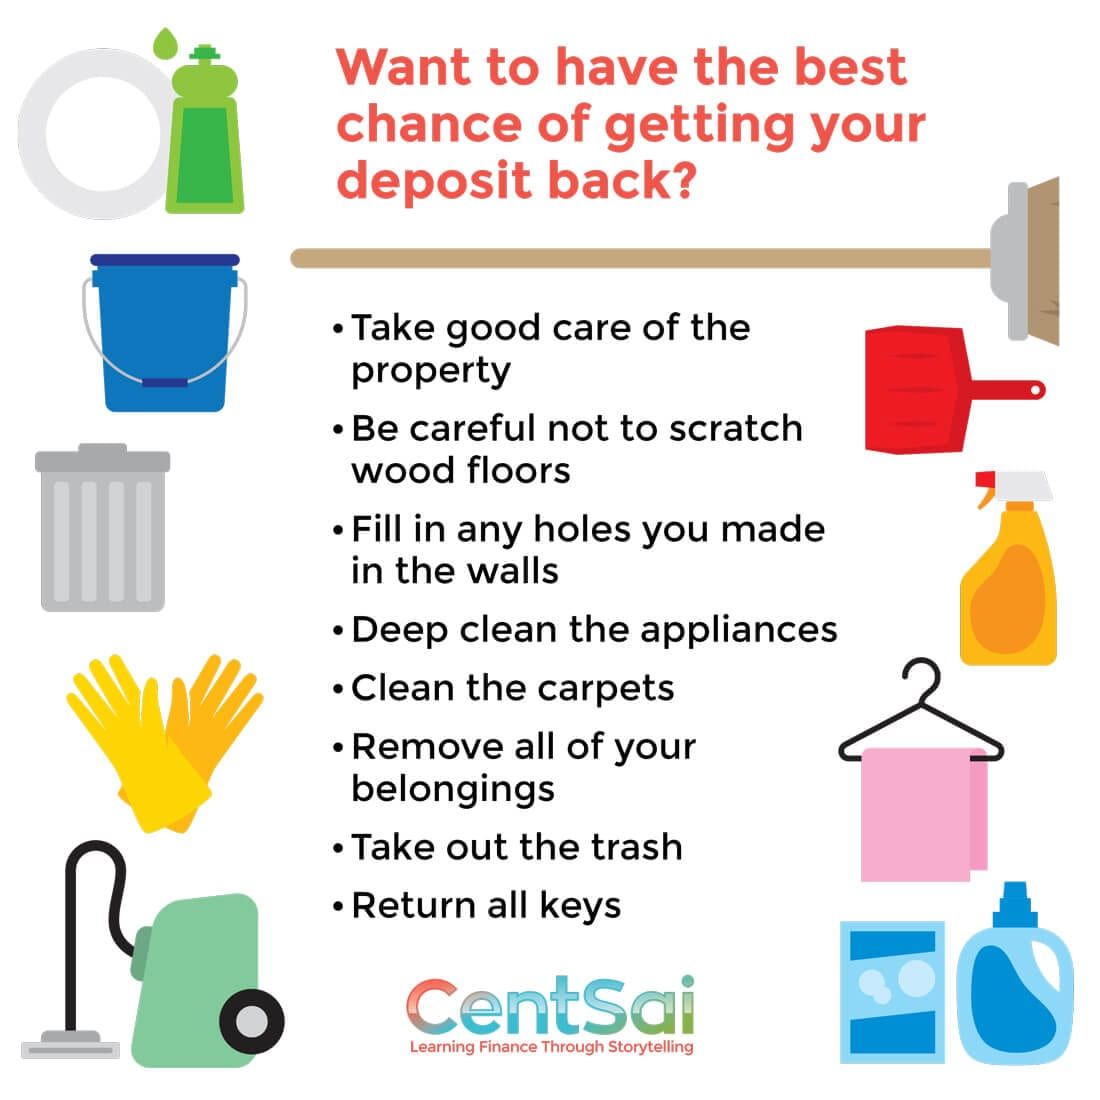 security deposit - 5 Questions to Ask When Renting an Apartment